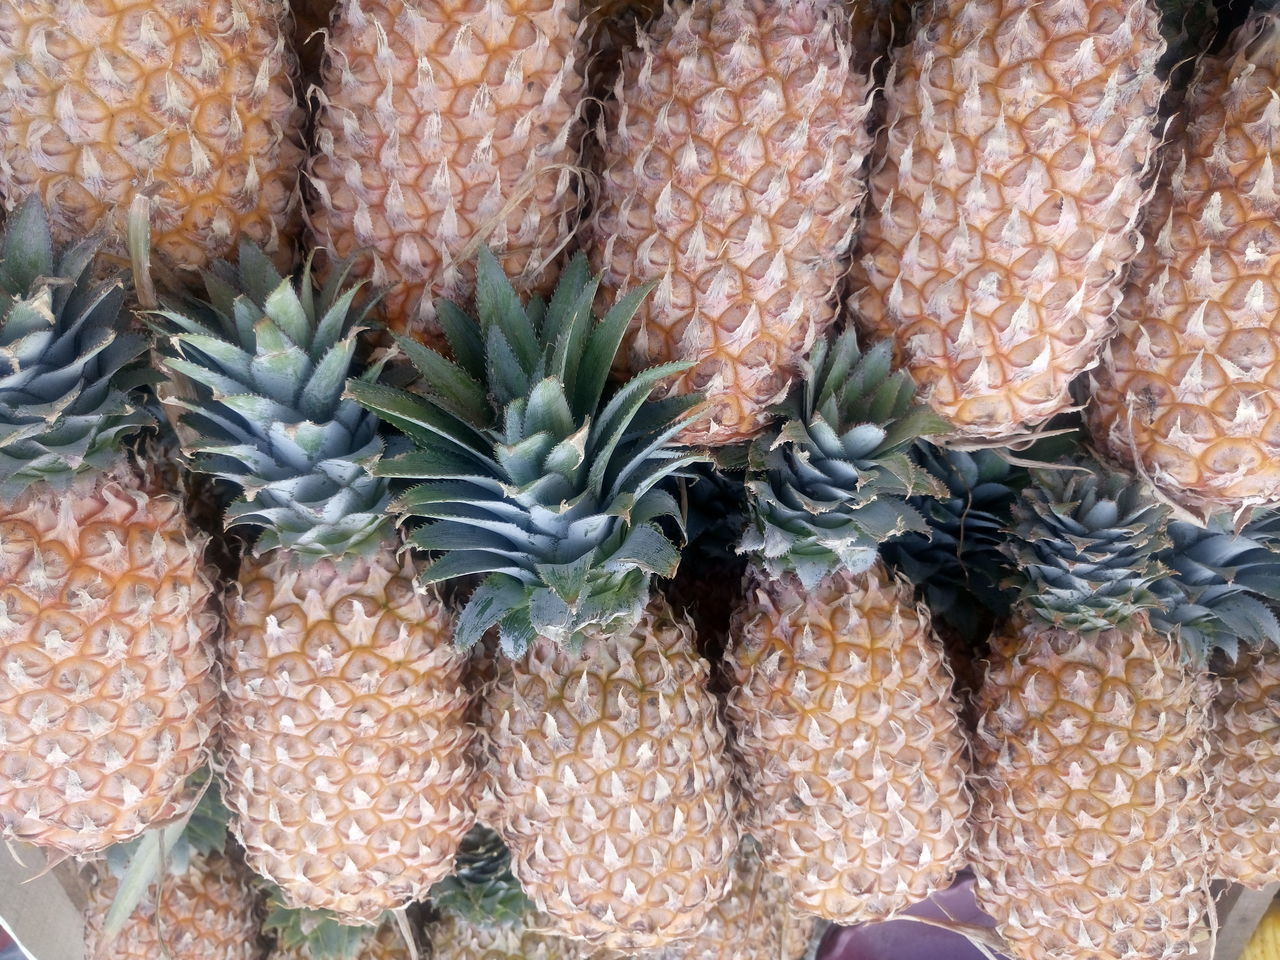 fruit, food and drink, pineapple, food, market, freshness, retail, healthy eating, no people, close-up, day, outdoors, supermarket